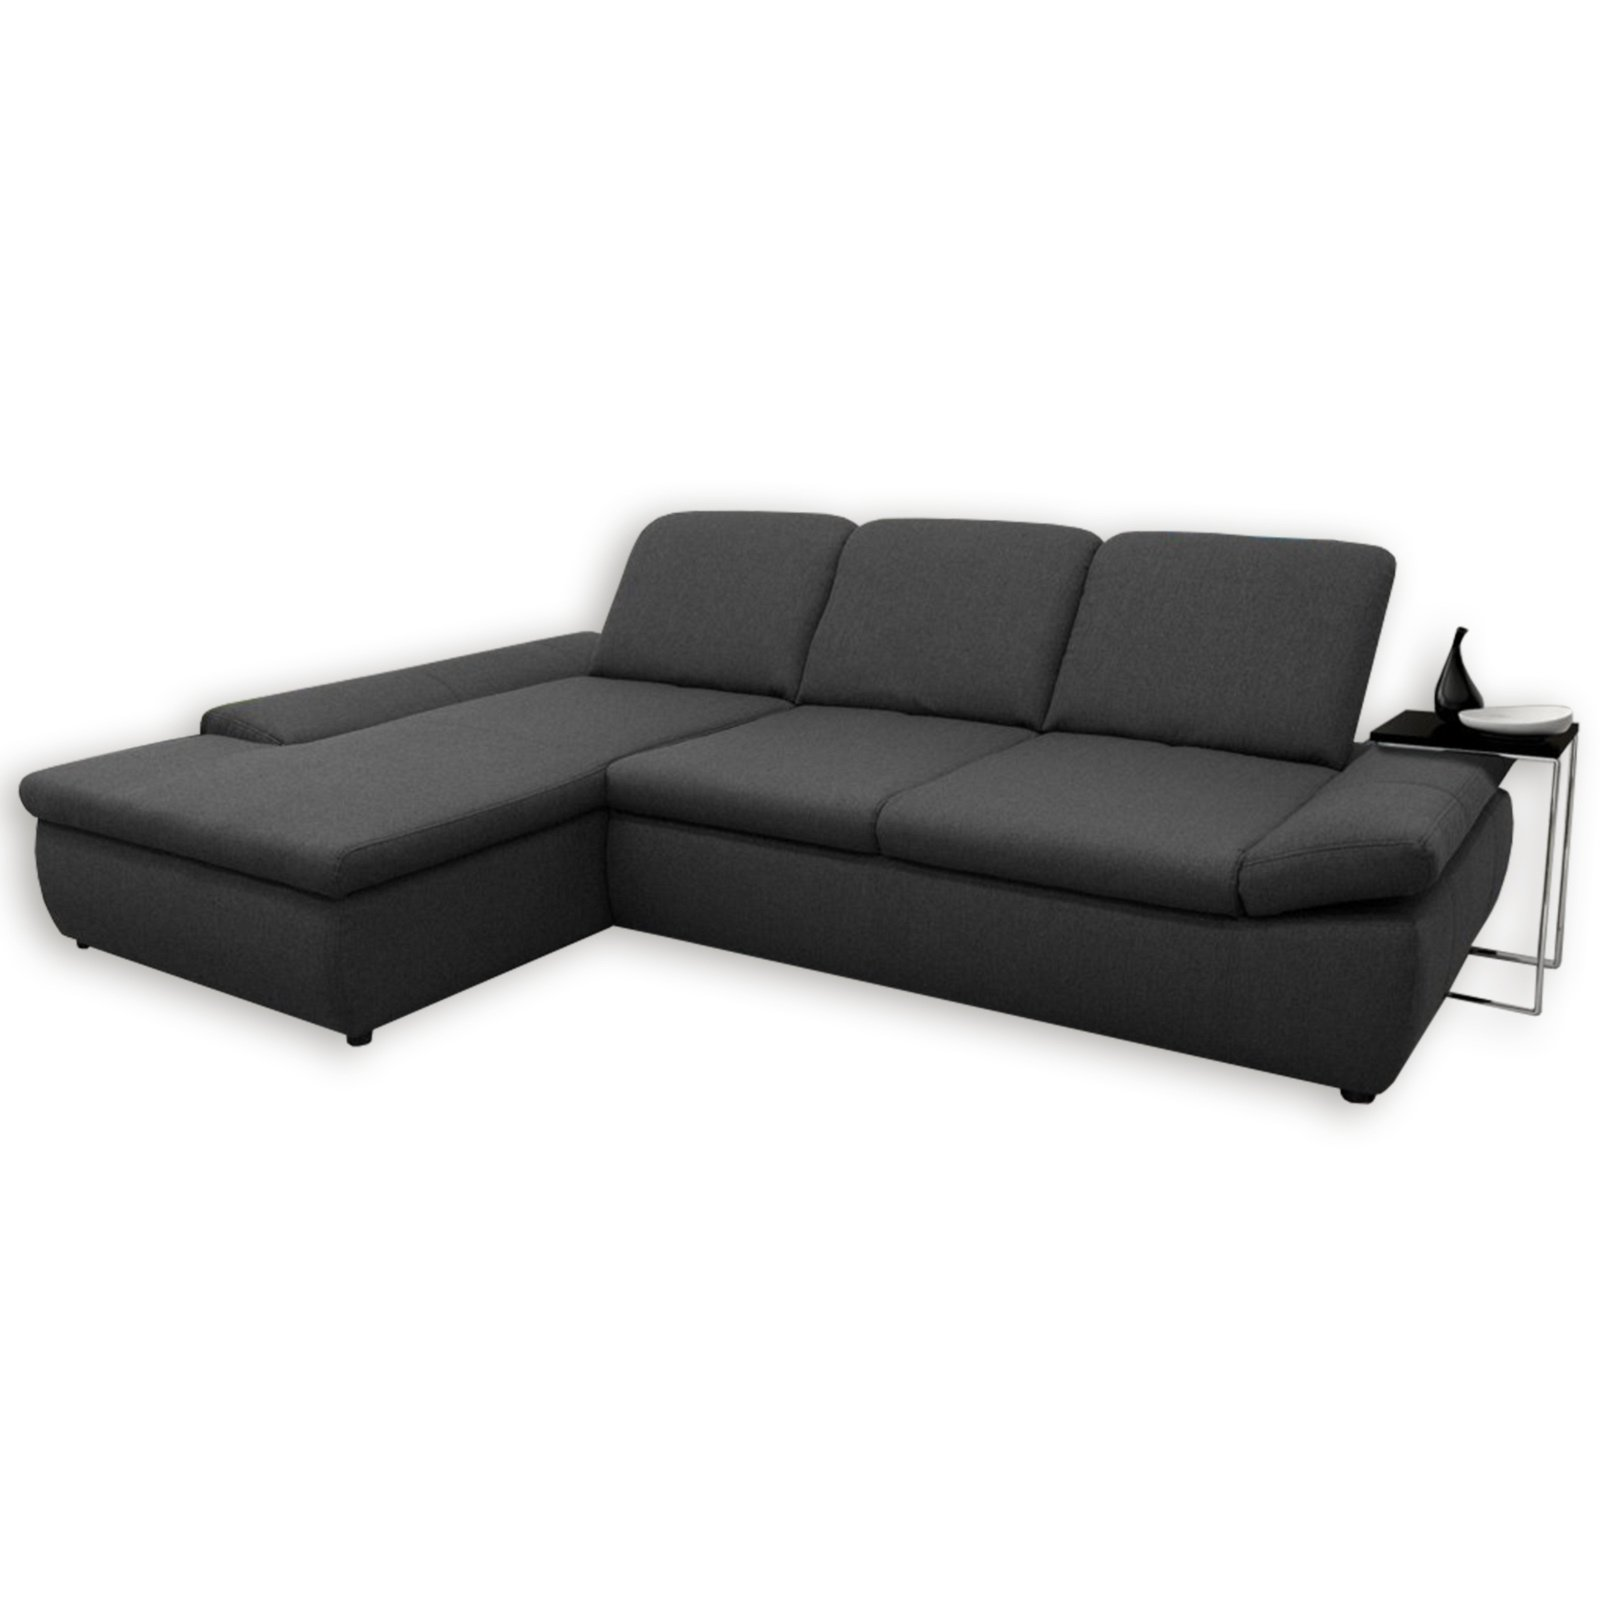 boxspringsofa anthrazit mit funktionen recamiere links ecksofas l form sofas couches. Black Bedroom Furniture Sets. Home Design Ideas